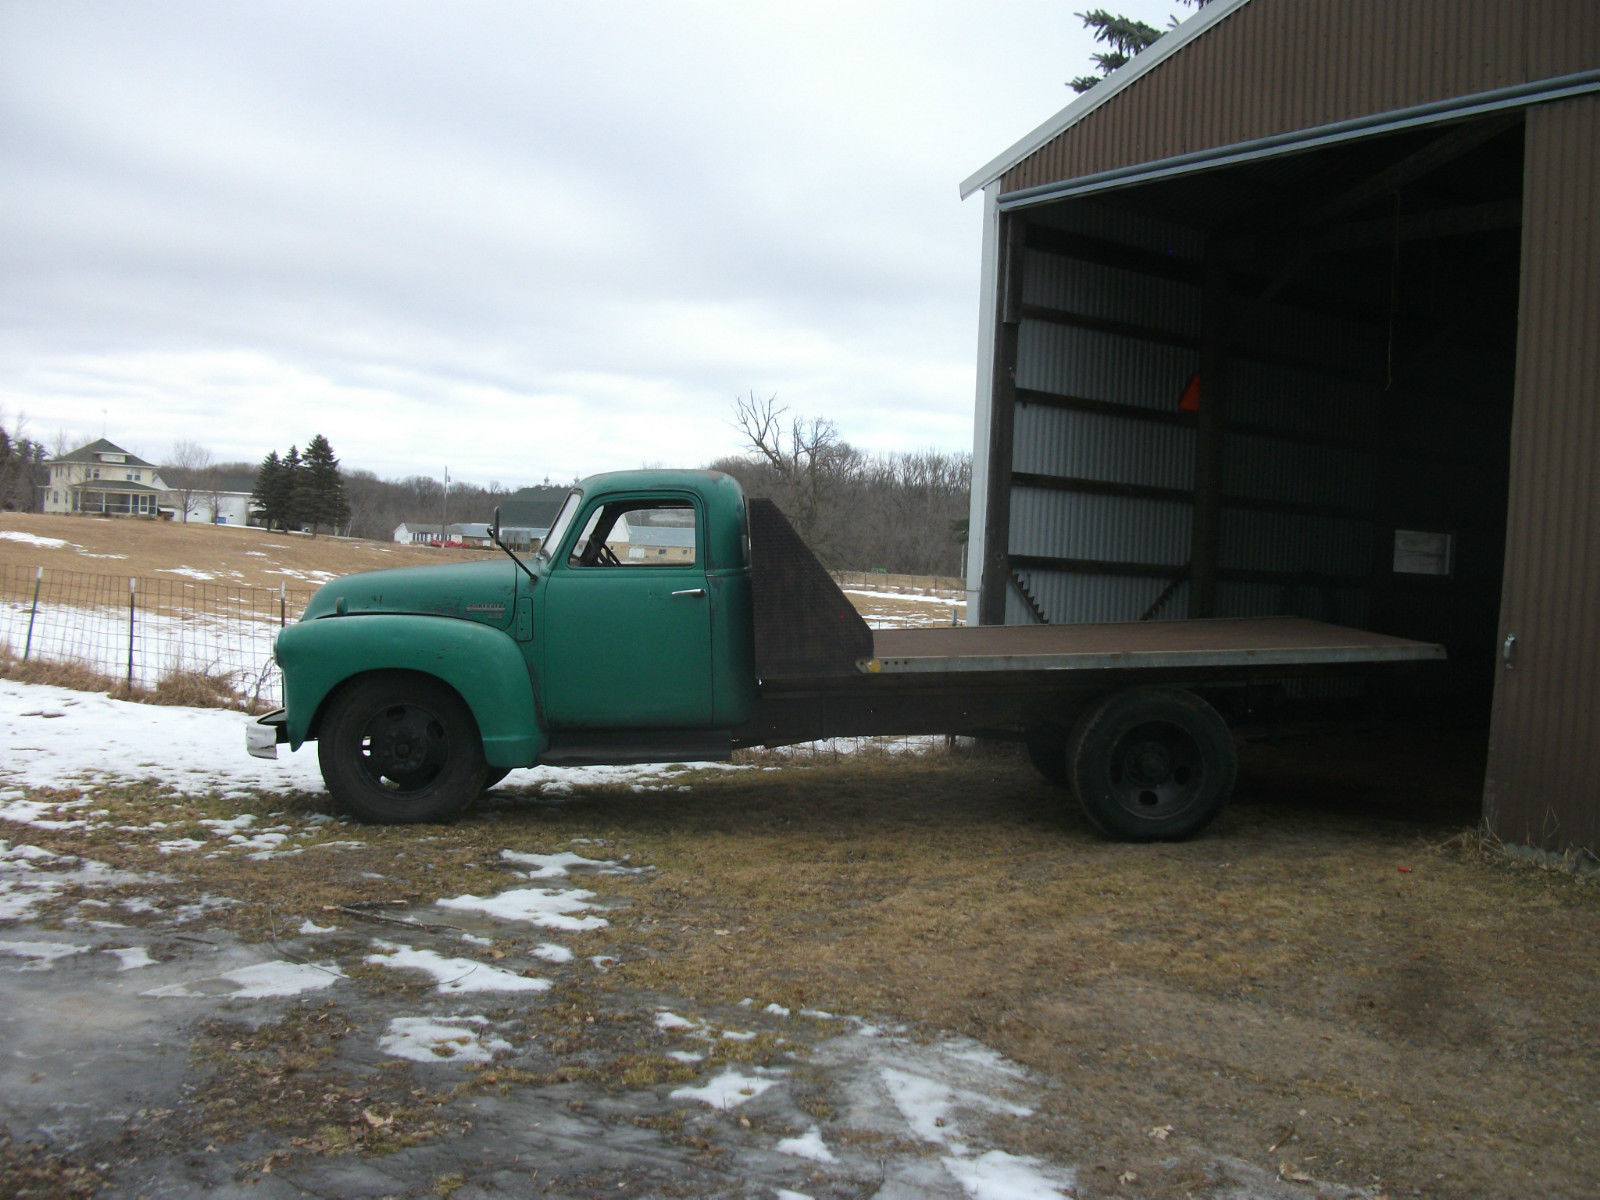 1950 Chevrolet 4400 Stake Truck 55000 Original Miles One Owner 1949 Chevy Vin Location No Reserve